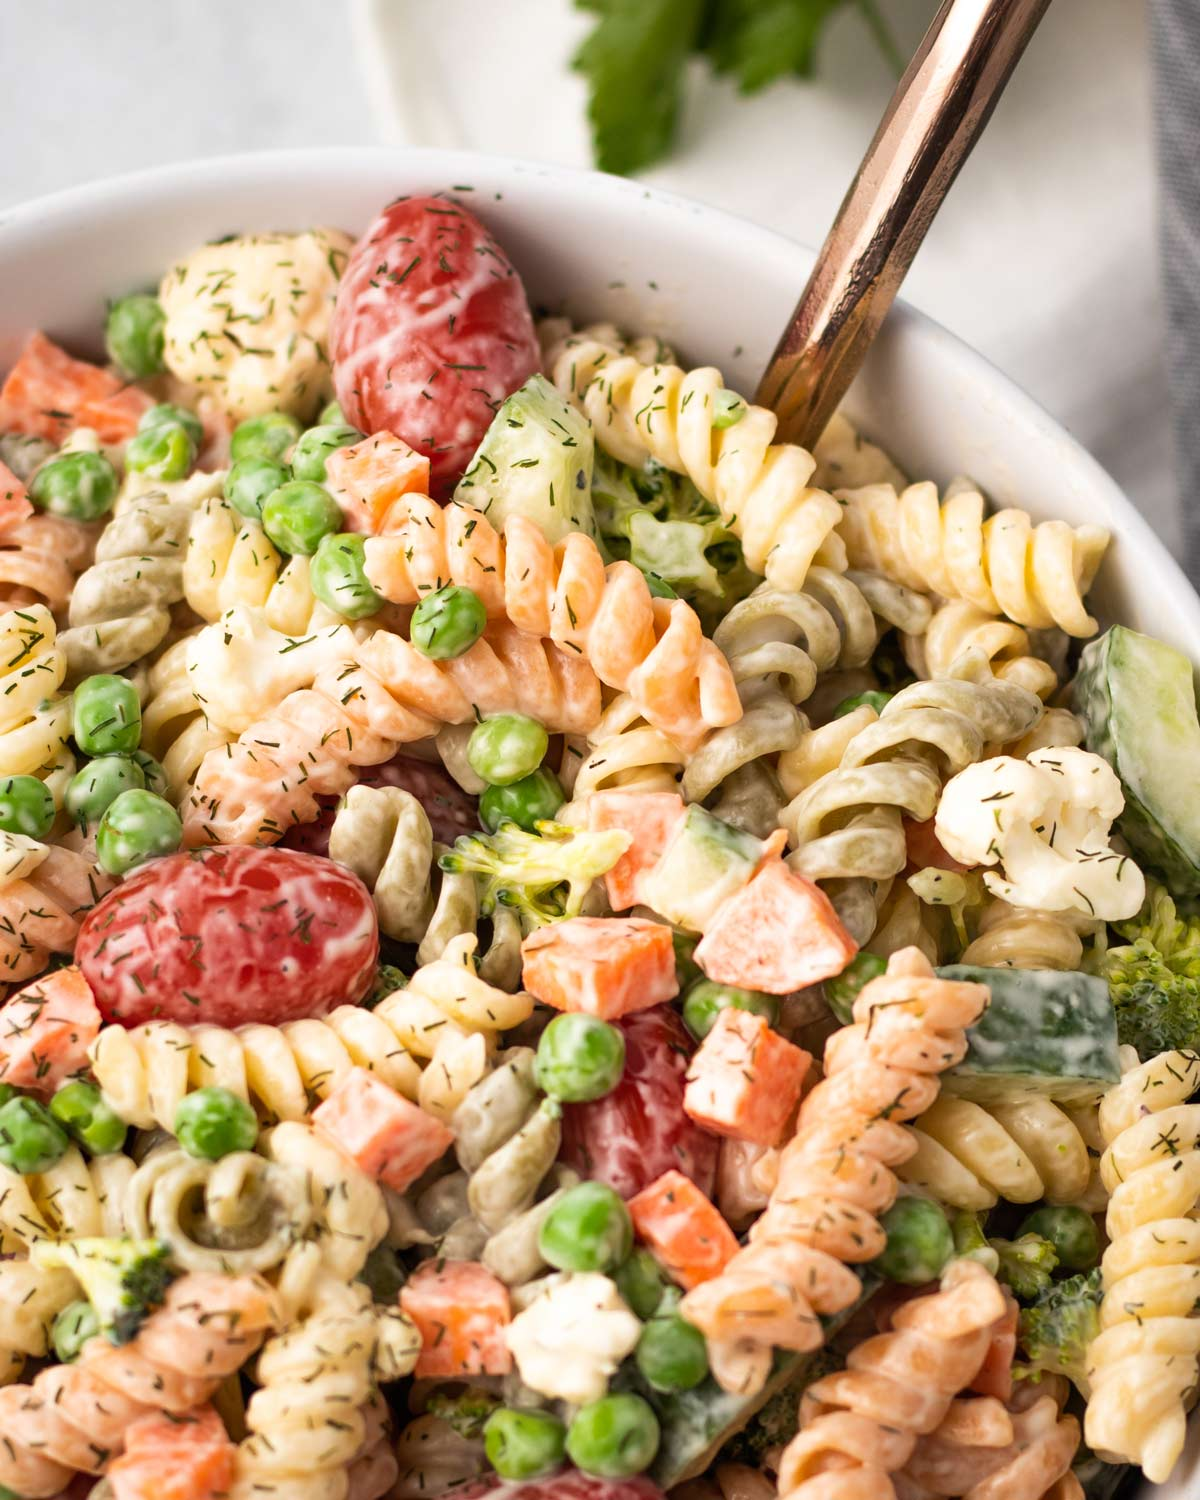 close up on vegan pasta salad with peas, carrots and rotini pasta.